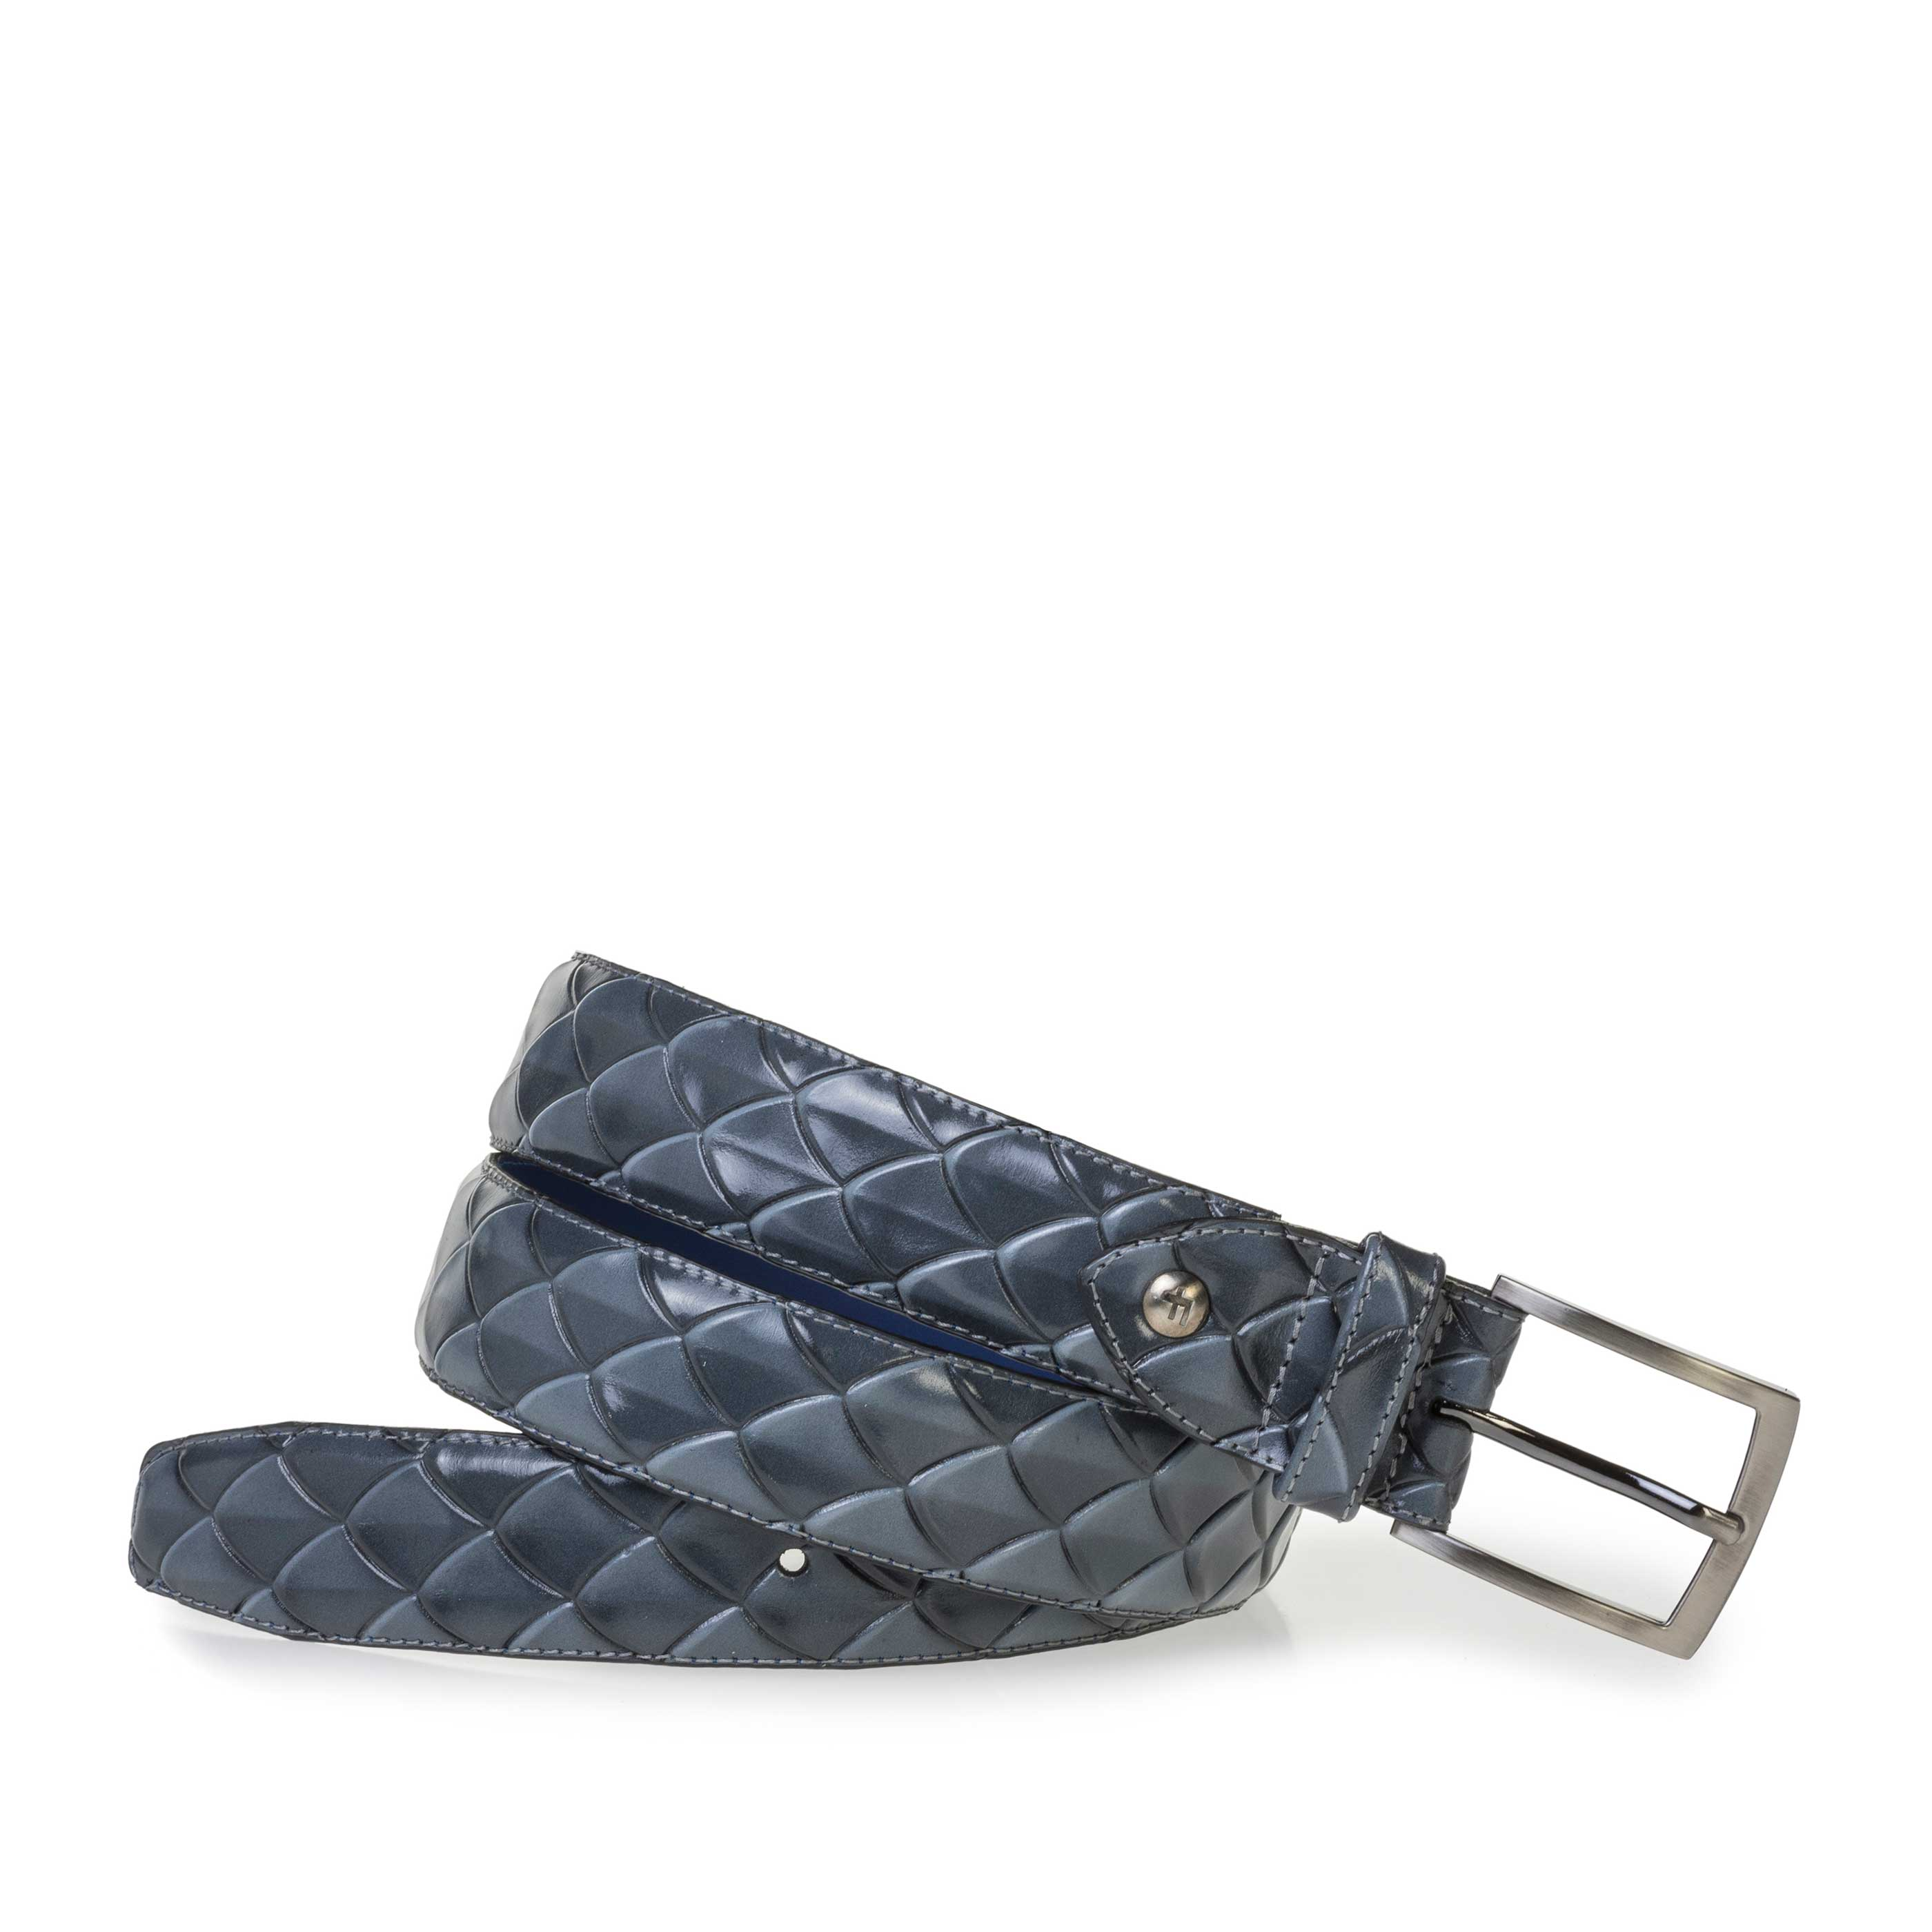 75201/64 - Premium grey leather belt with print